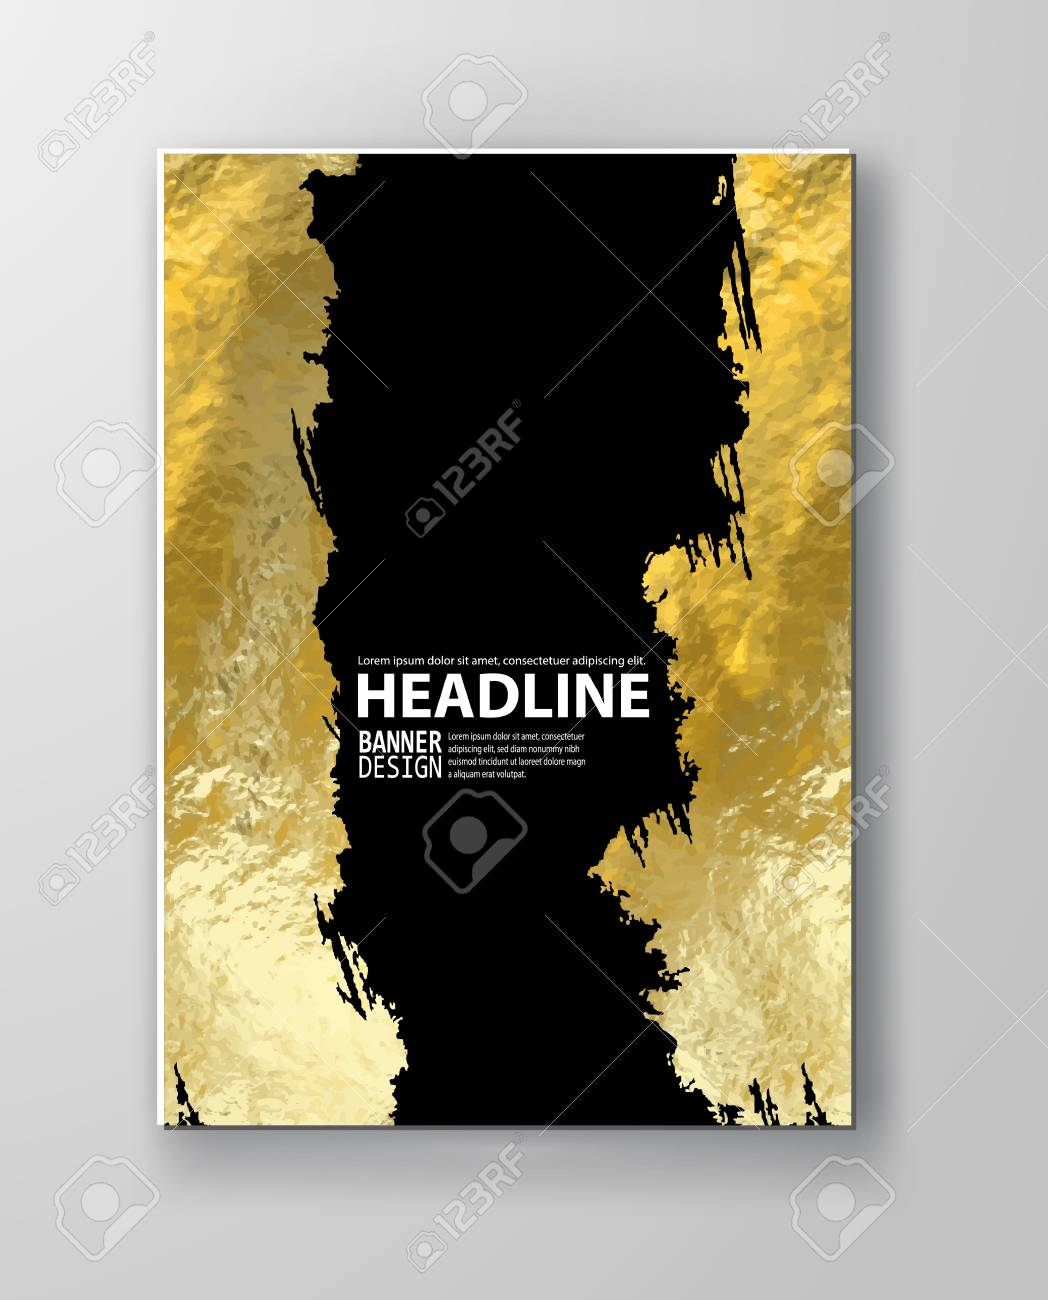 vector black and gold design templates for brochures flyers mobile